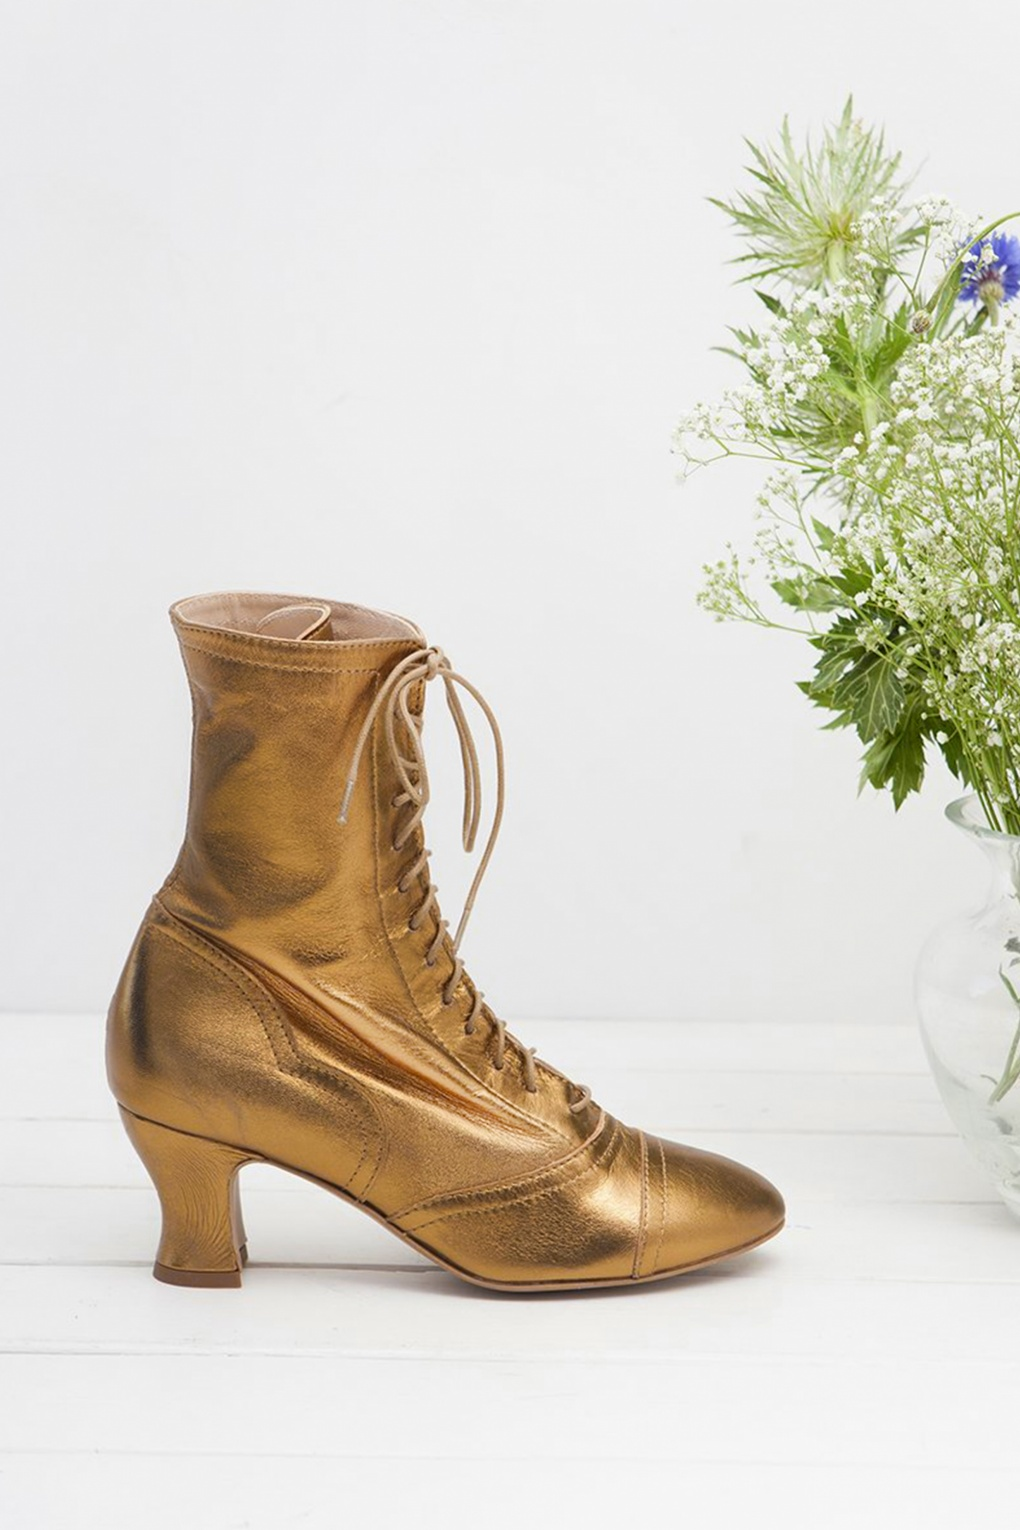 Steampunk Boots & Shoes, Heels & Flats 40s Frida Lace Up Booties in Gold £174.94 AT vintagedancer.com